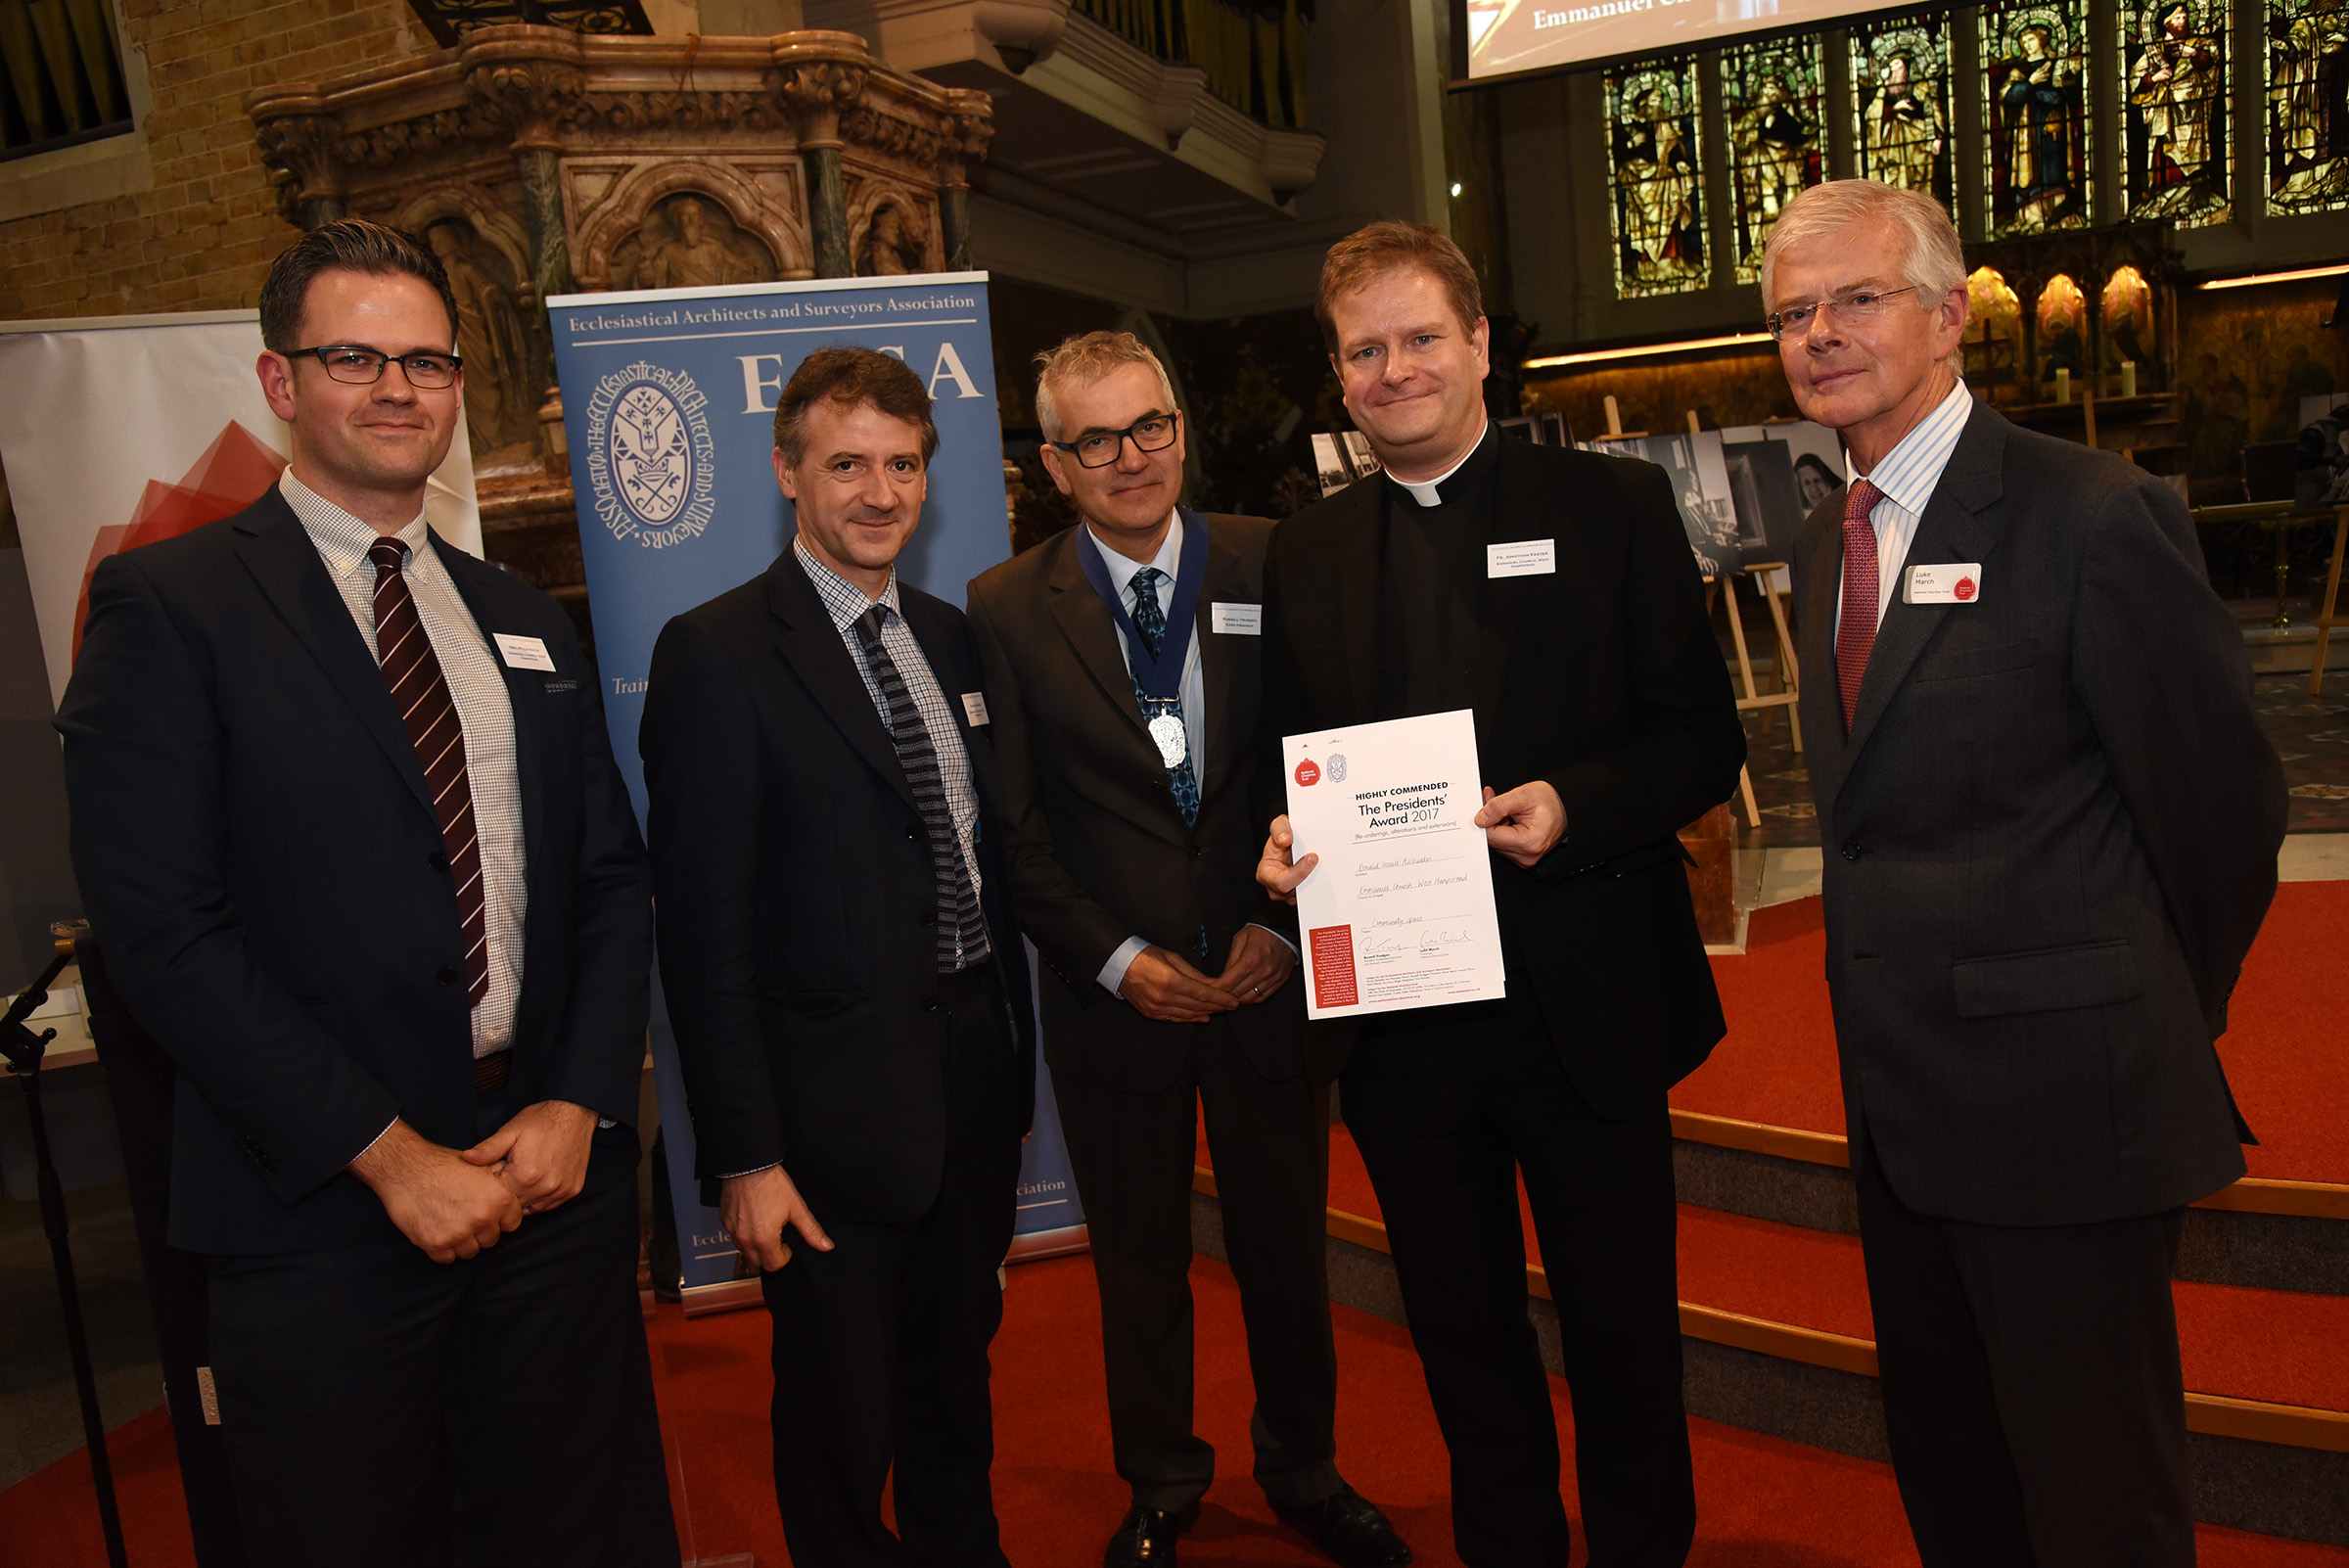 Emmanuel Church, West Hampstead, and Donald Insall Associates, Highly Commended for the Presidents' Award for reordering, extensions and alterations